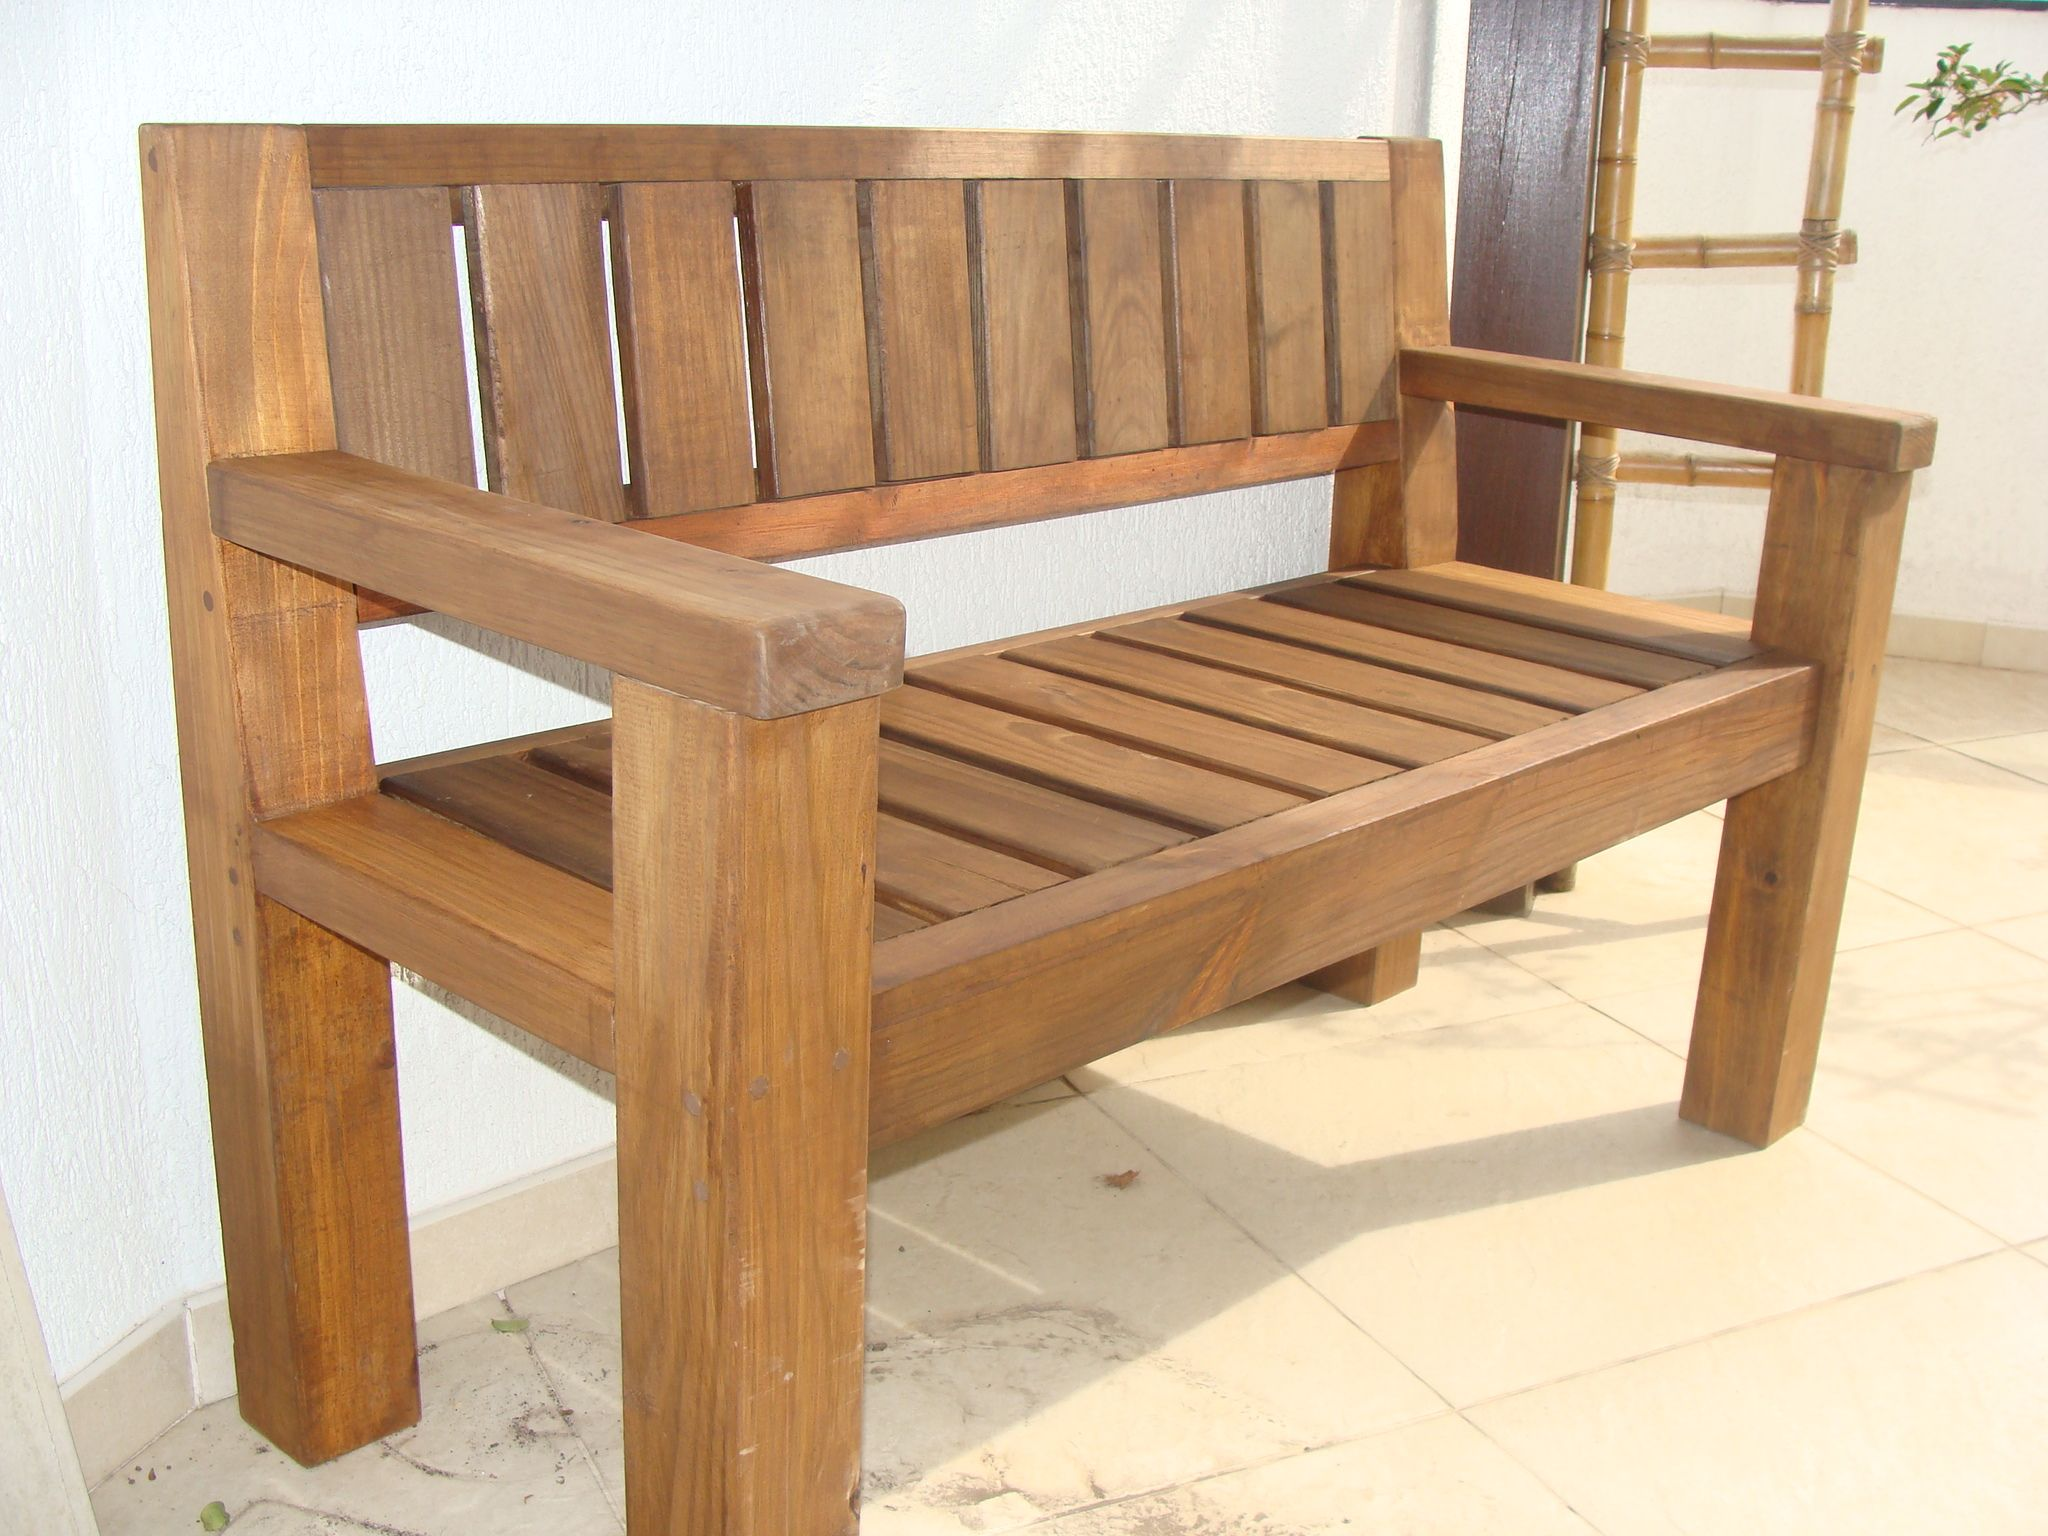 Rustic Bench Ideas Part - 35: Image Result For Rustic Bench Ideas